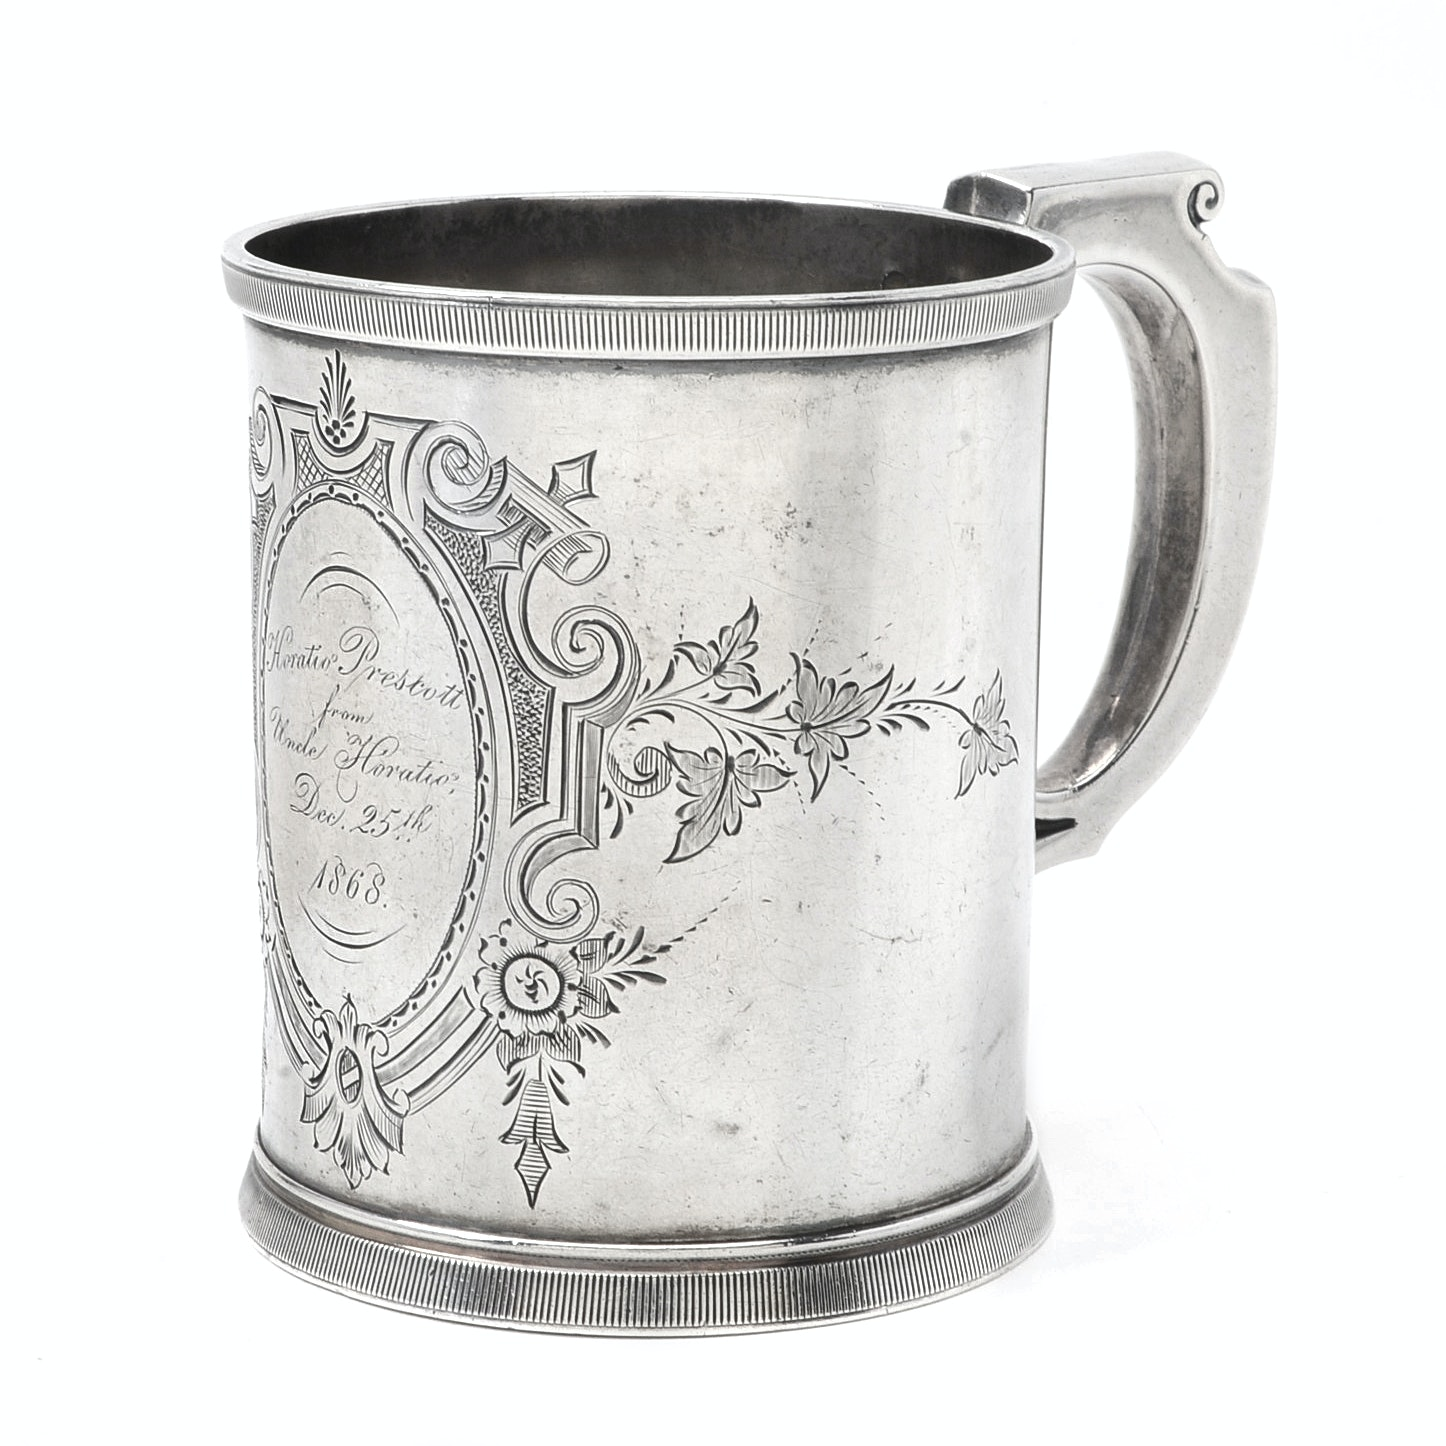 Antique Wood & Hughes Sterling Silver Mug with Dated 1868 Christmas Inscription